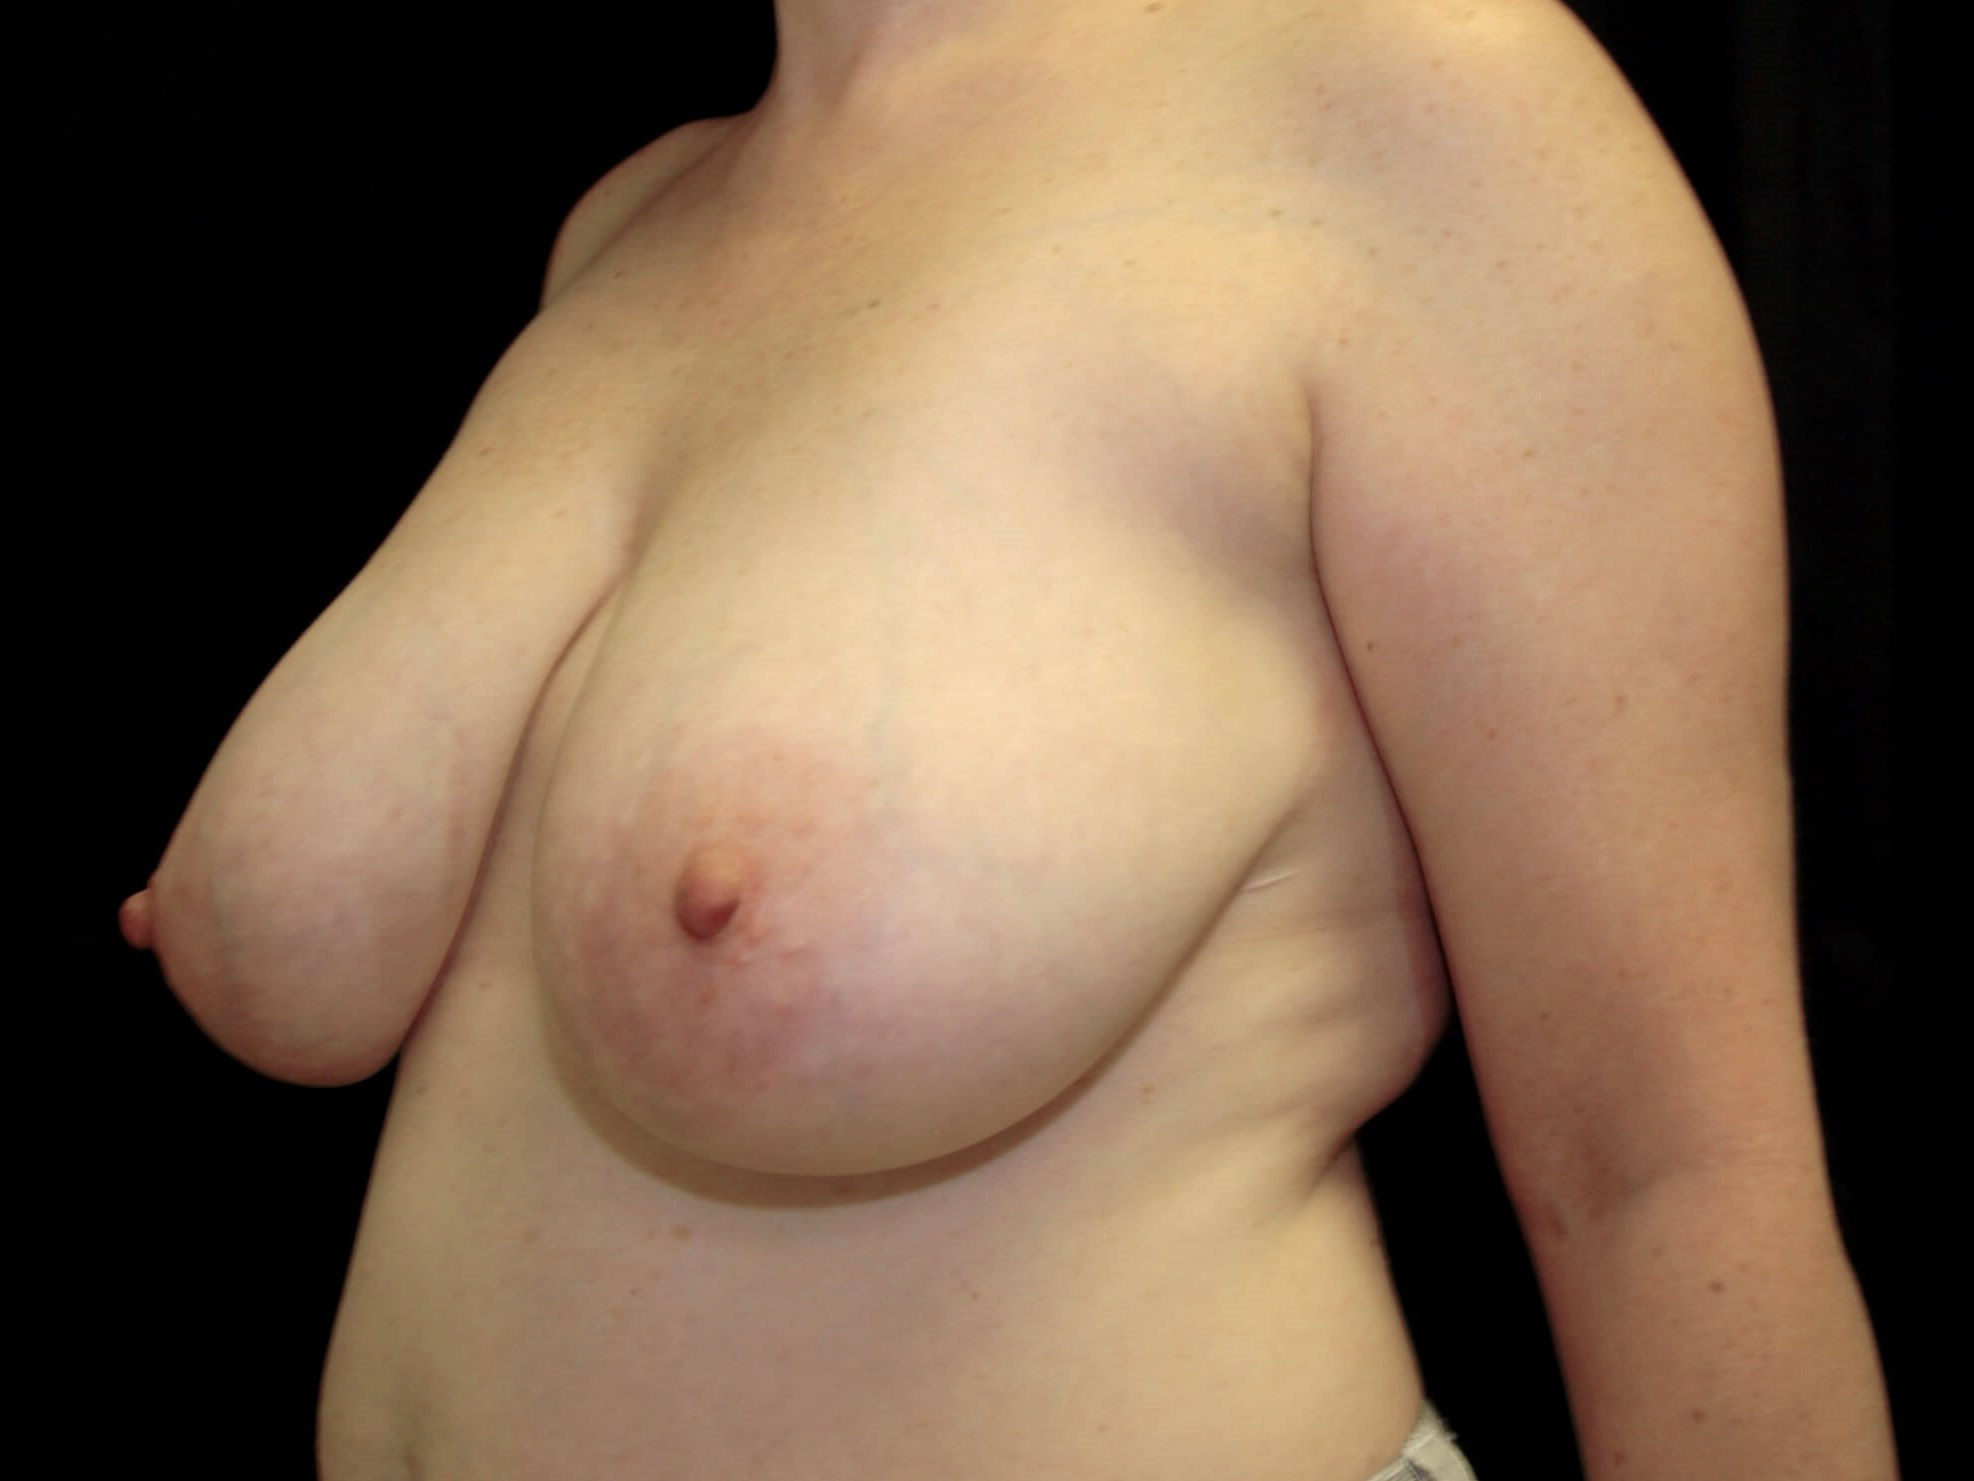 PLANO, TEXAS WOMAN HAS BREAST REDUCTION WITH SILICONE GEL IMPLANTS